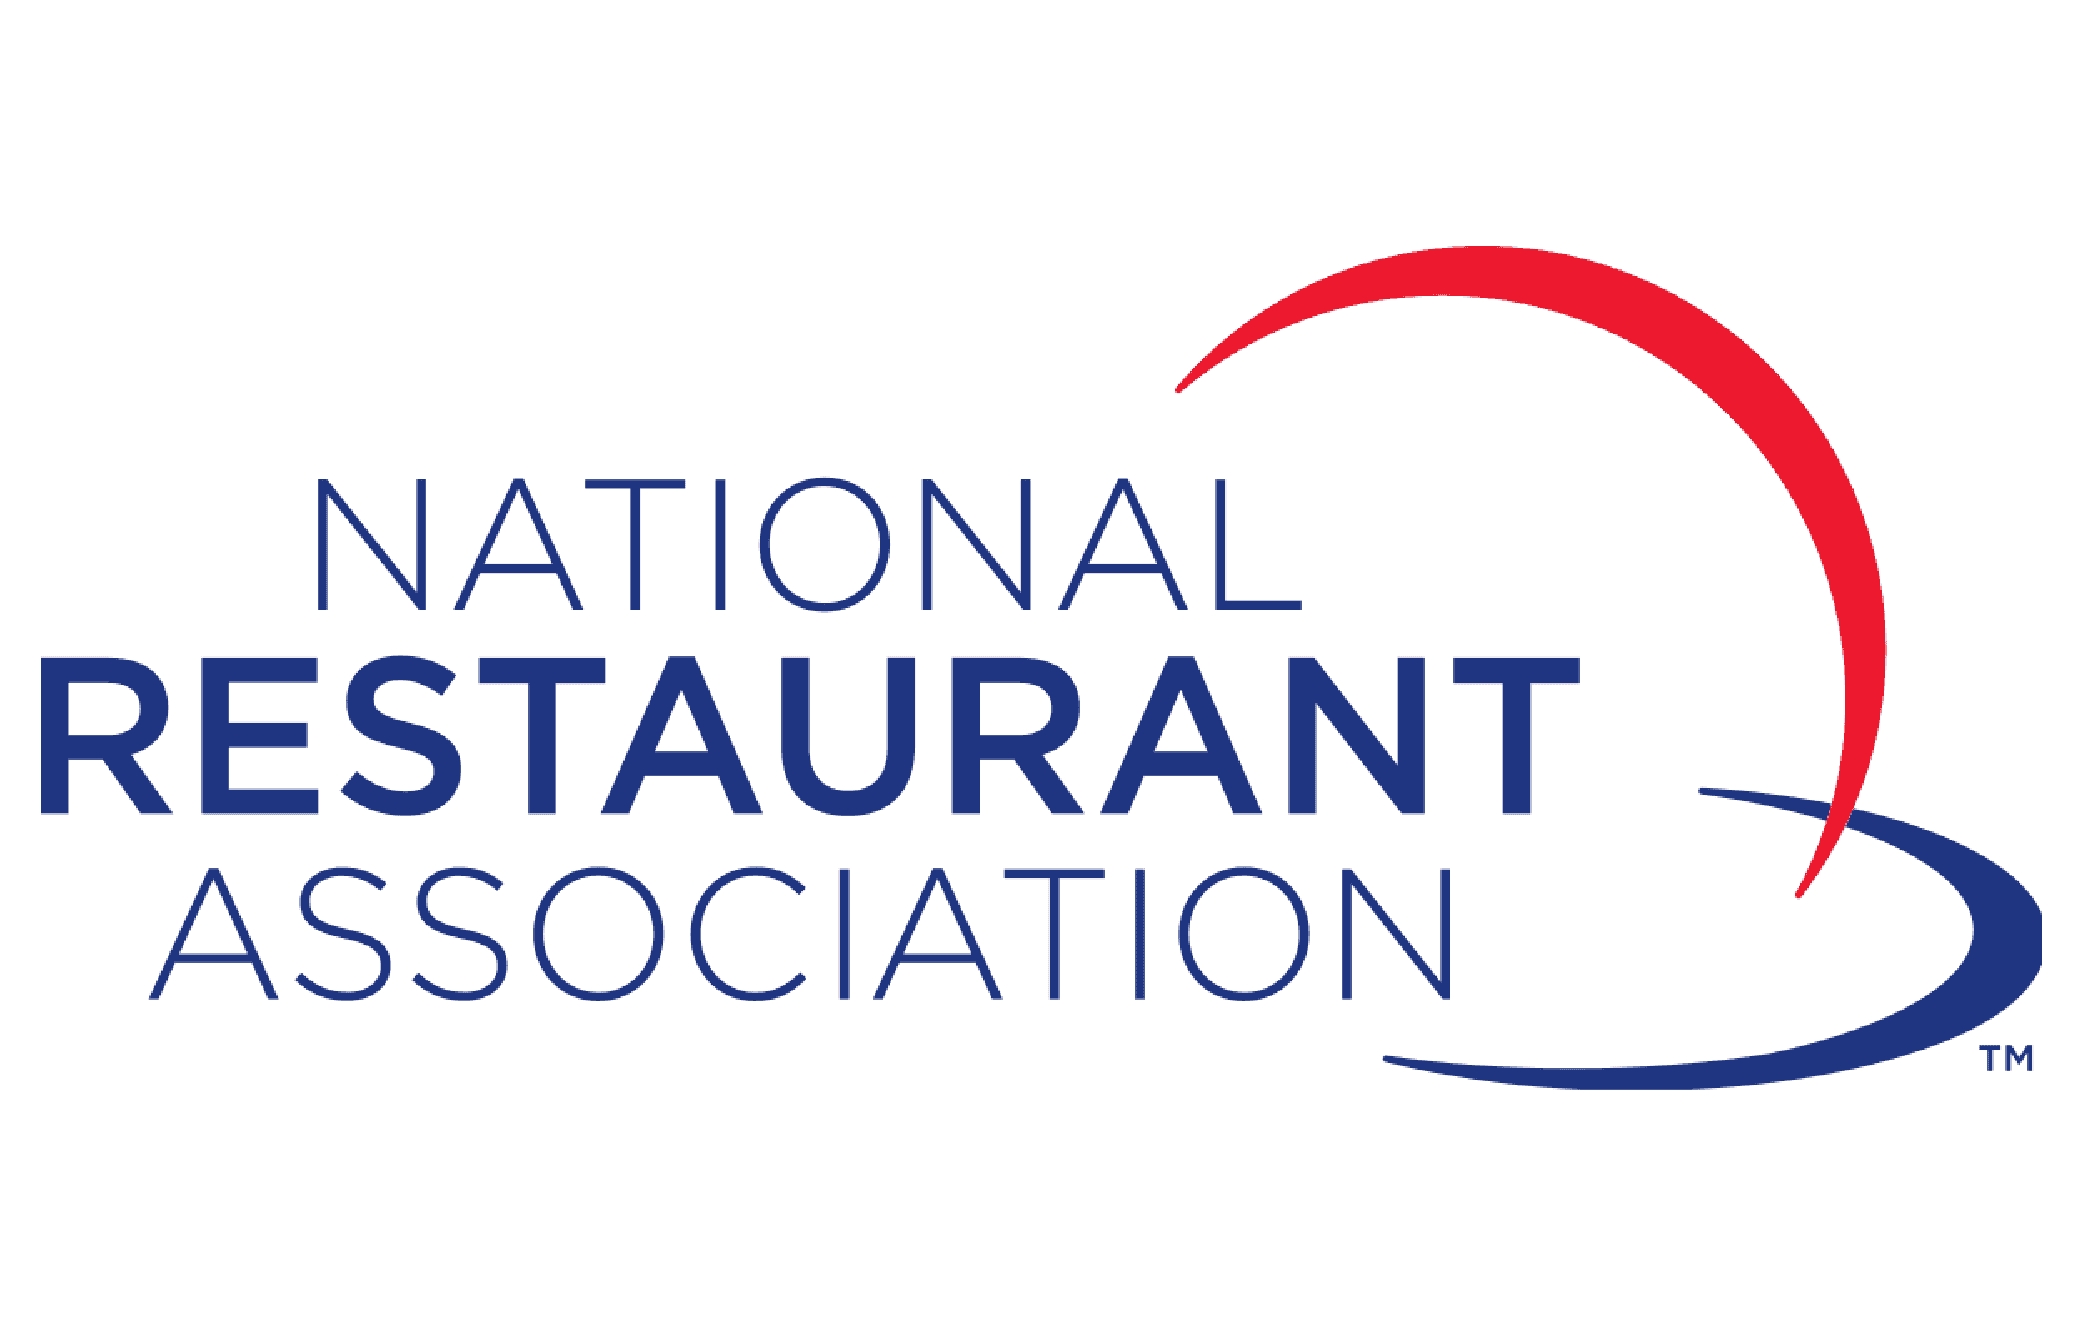 PointofSale National Restaurant Association Forecasts Restaurants will Add 1.6 Million New Jobs by 2029; 2019 Industry Sales Projected to Reach $863 Billion